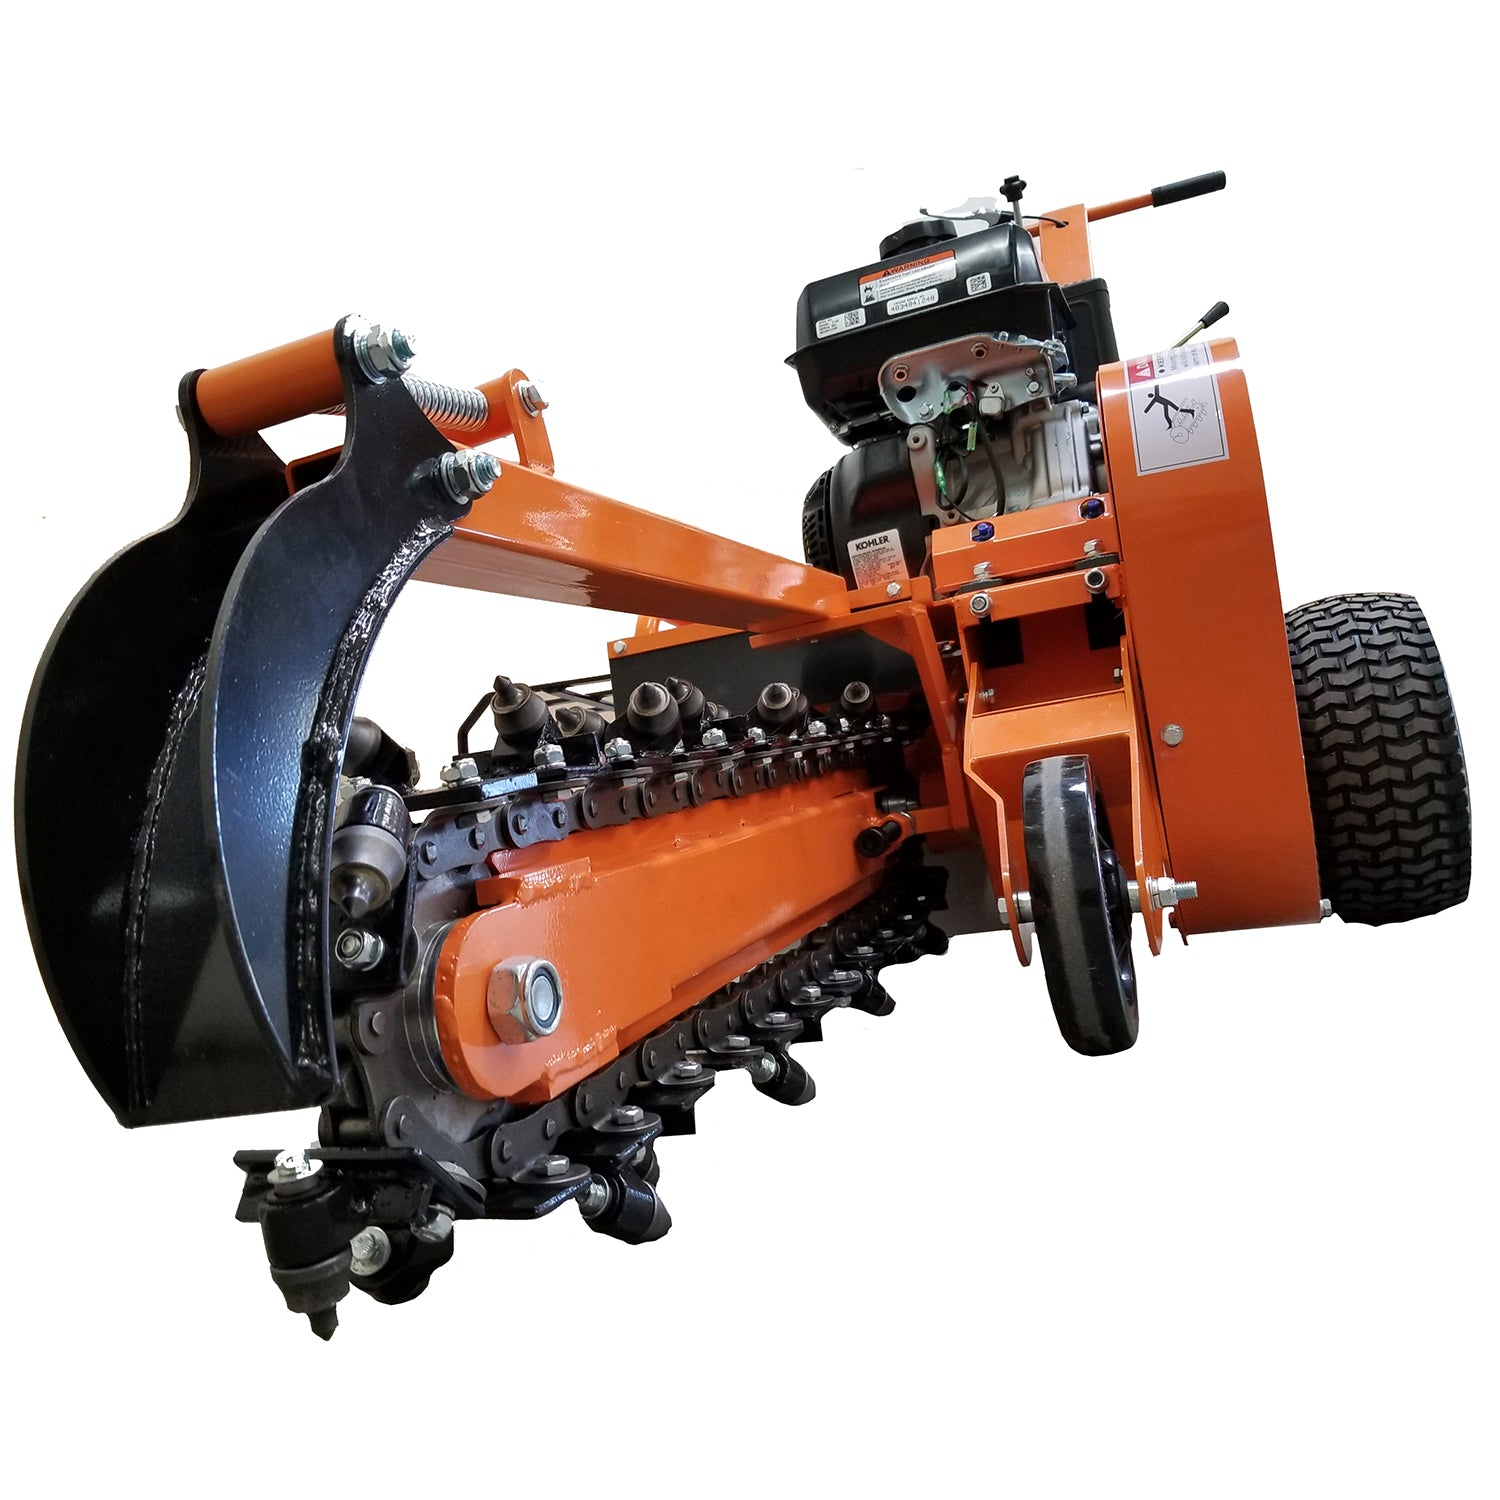 Detail K2 24 Inch 14 HP Trencher - OPT124-Wood Splitter Outlet